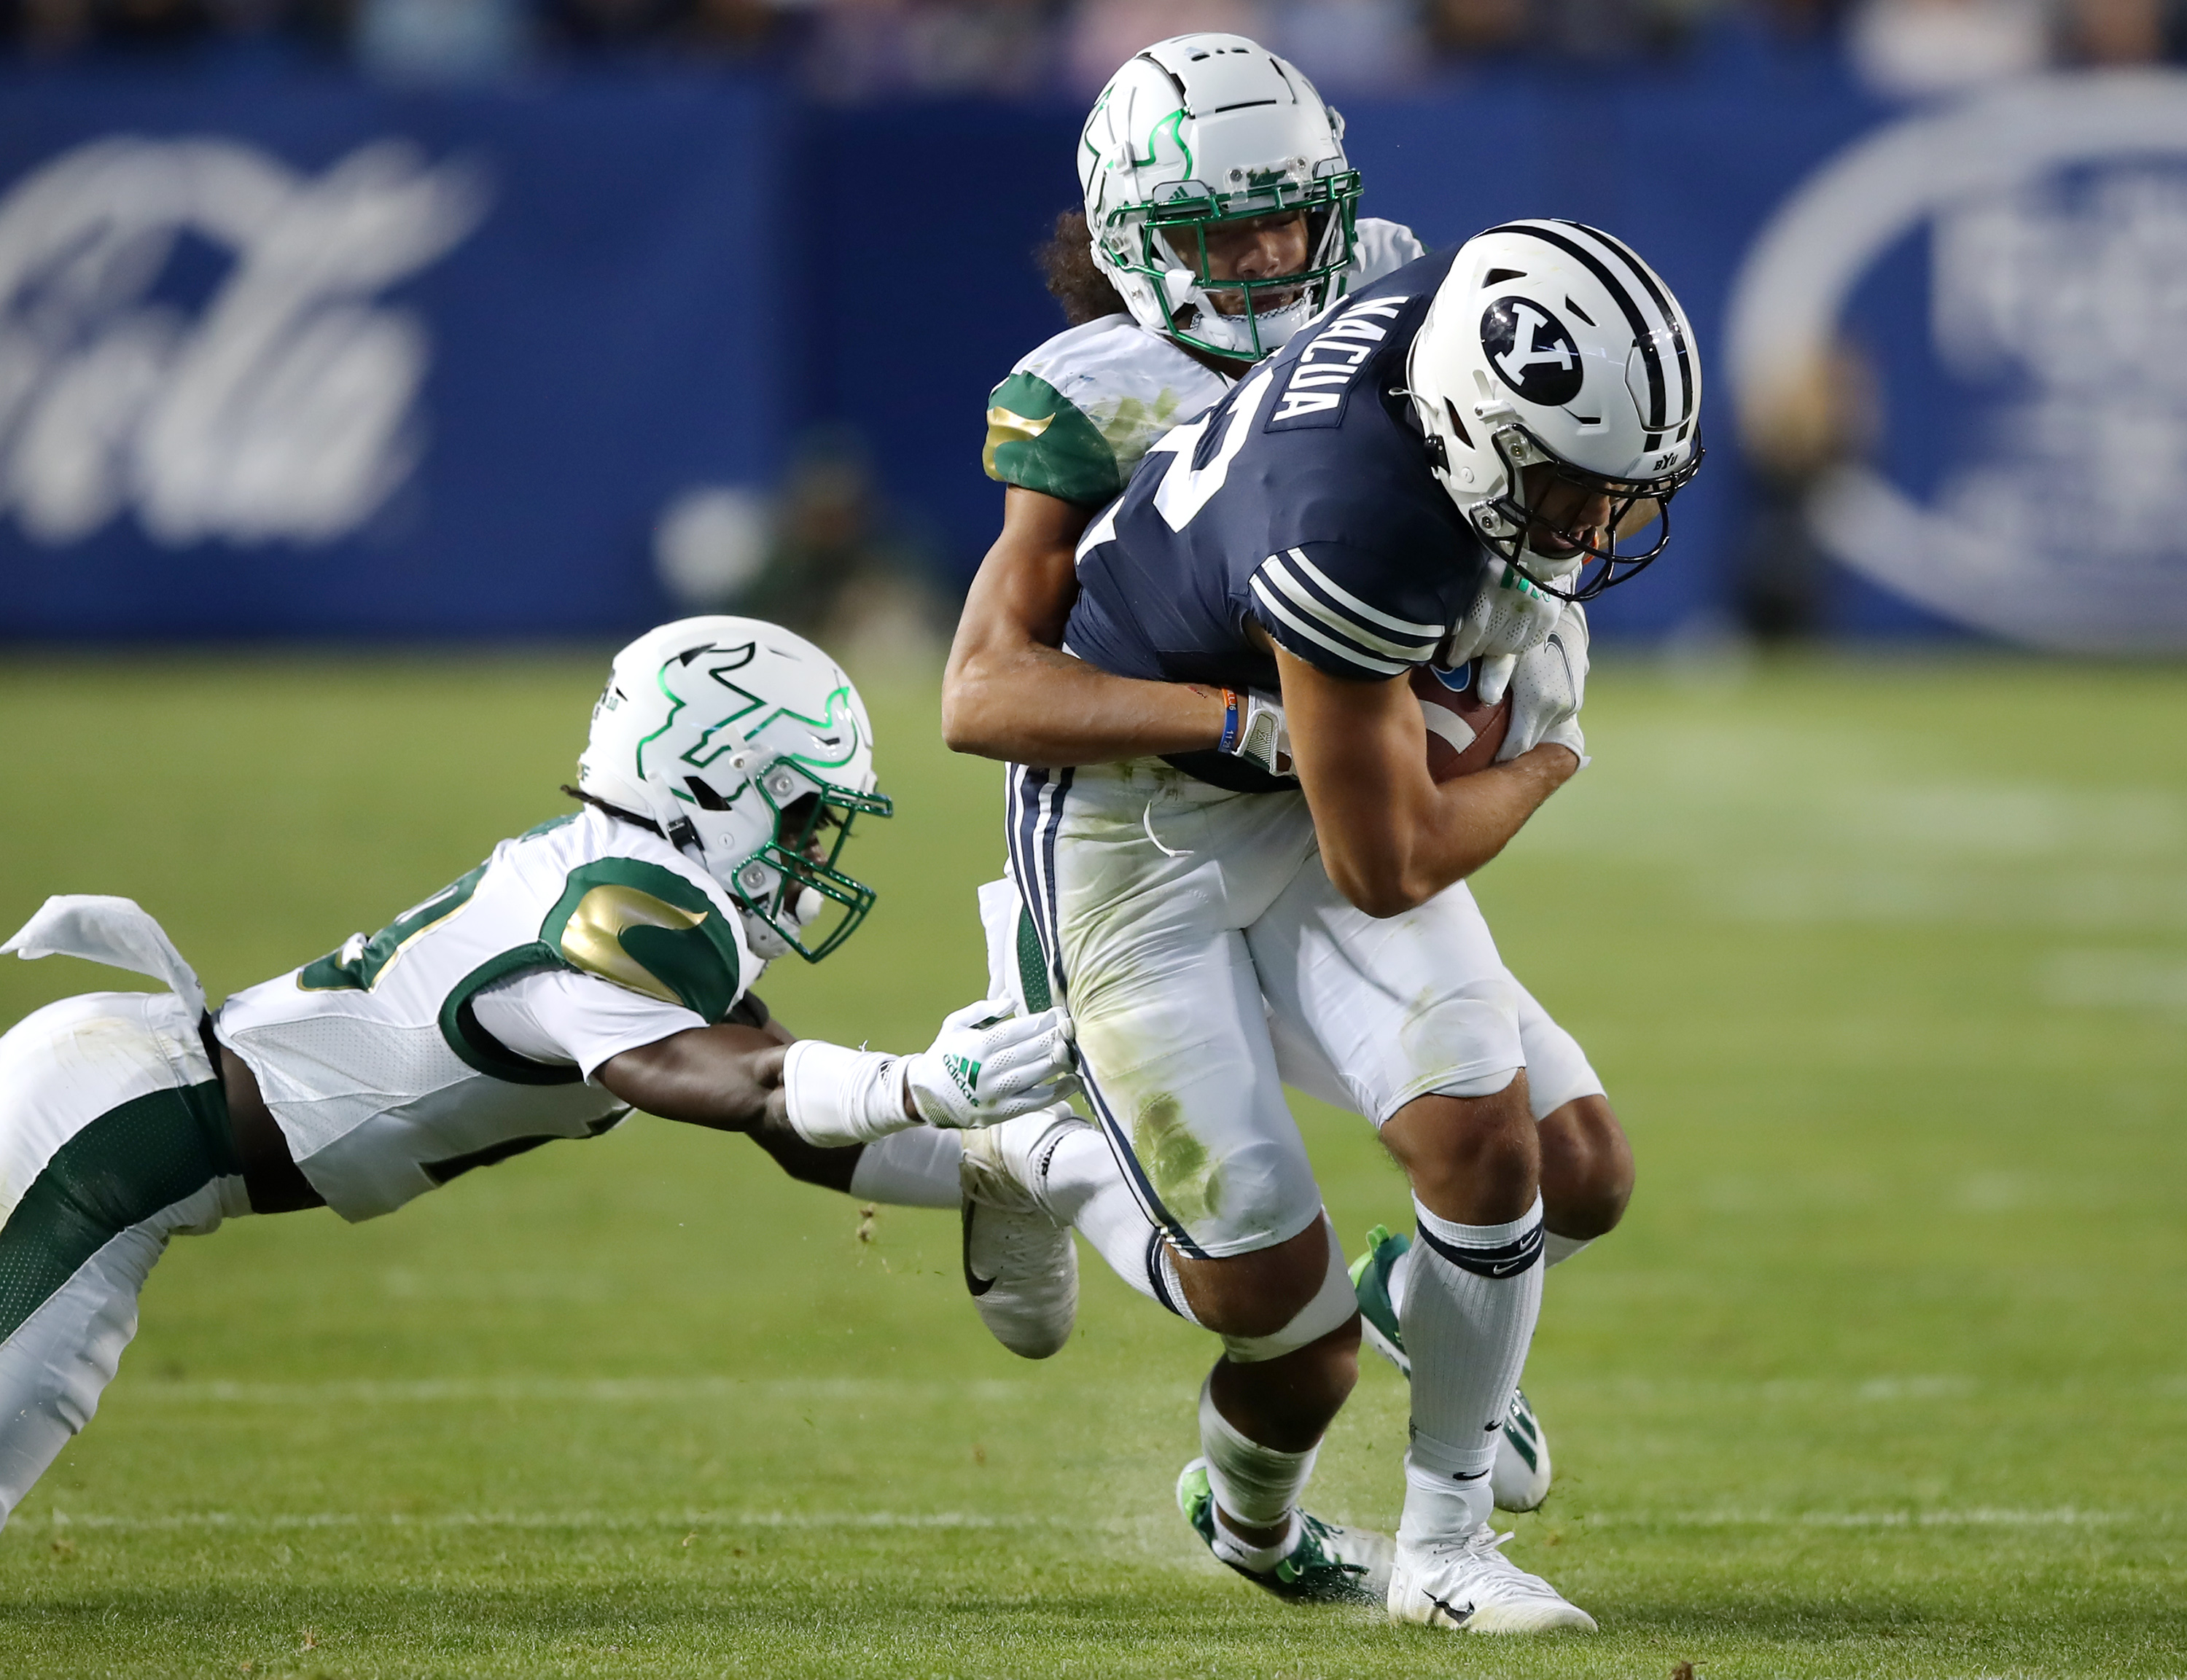 Brigham Young Cougars wide receiver Puka Nacua (12) is tackled after a catch and short run by South Florida Bulls defensive back Jalen Herring (19) and South Florida Bulls safety Matthew Hill (1) as BYU and USF play a college football game at LaVell Edwards Stadium in Provo on Saturday, Sept. 25, 2021. BYU won 35-27.